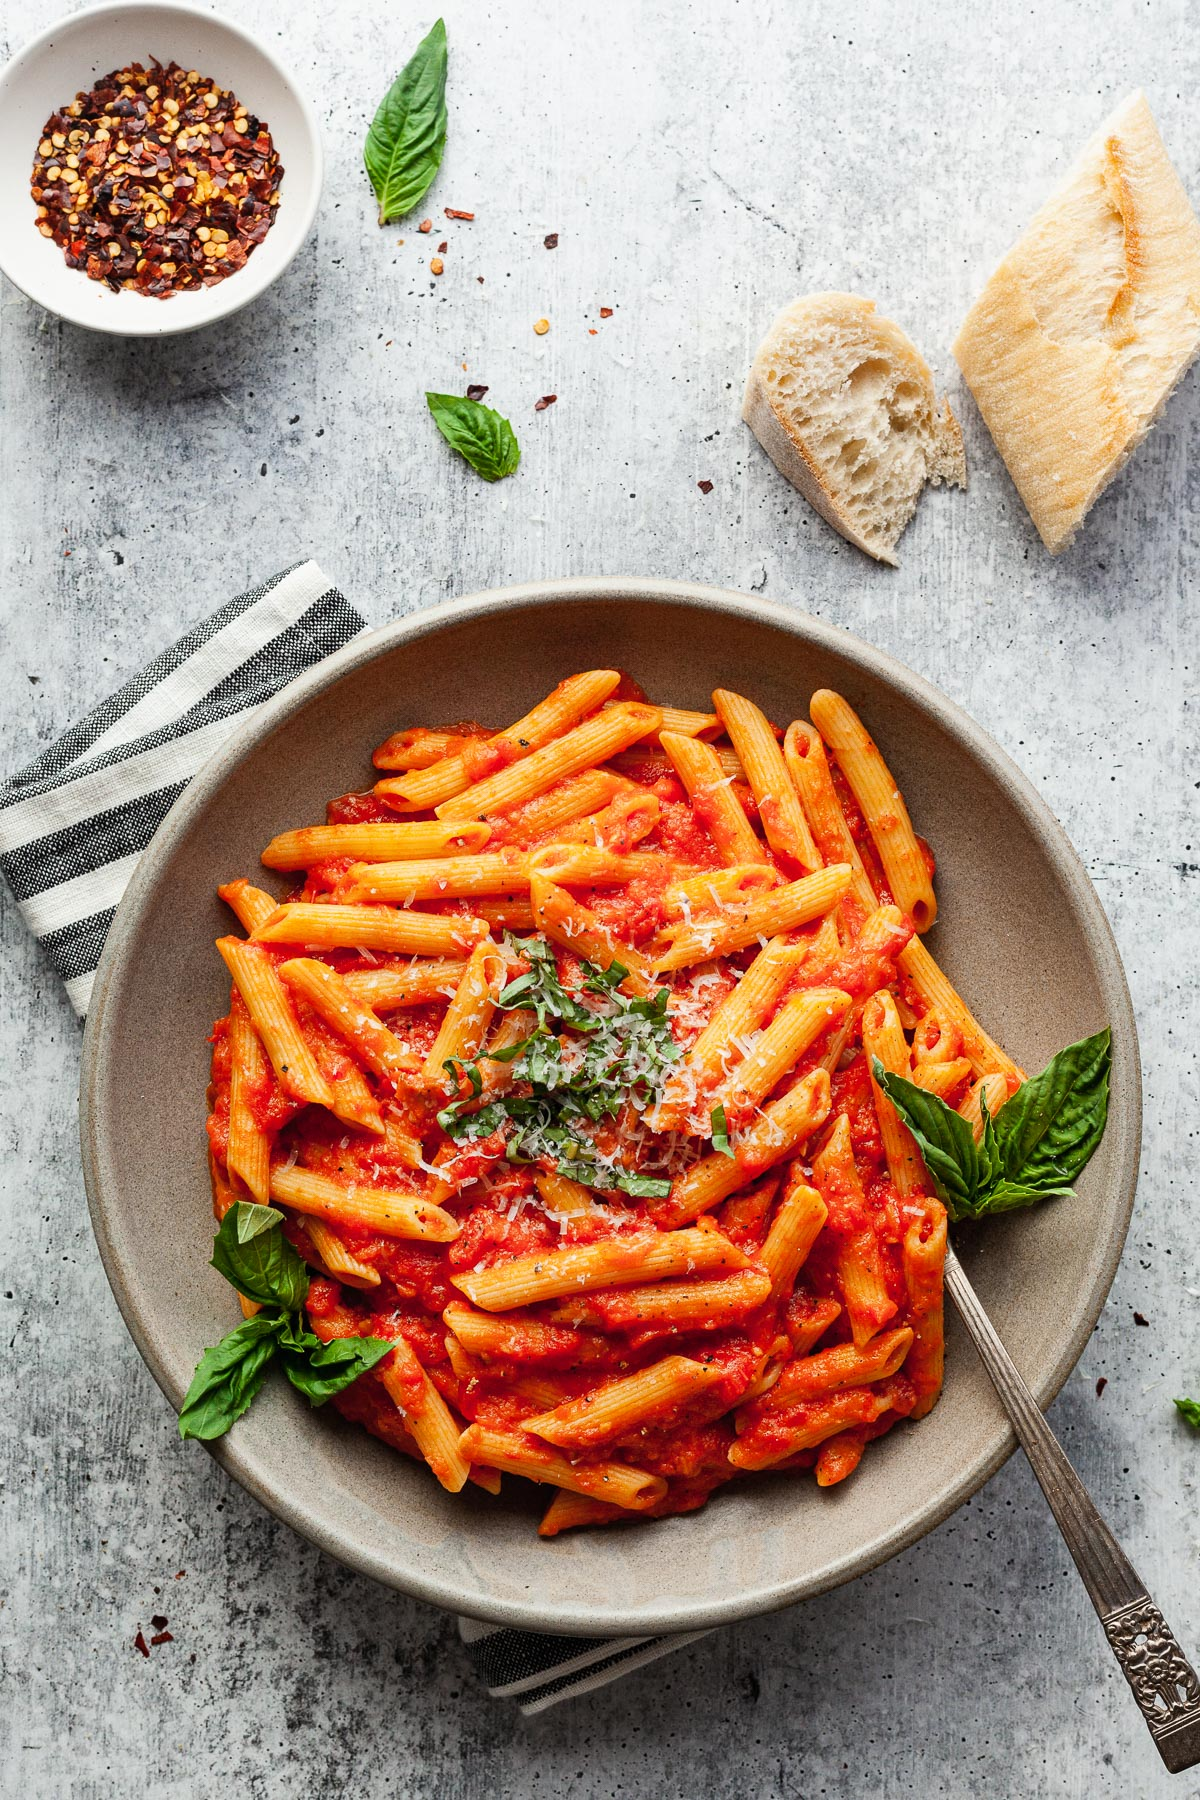 a plate of penne pomodoro with a fork, napkin, bread, and crushed red pepper flakes